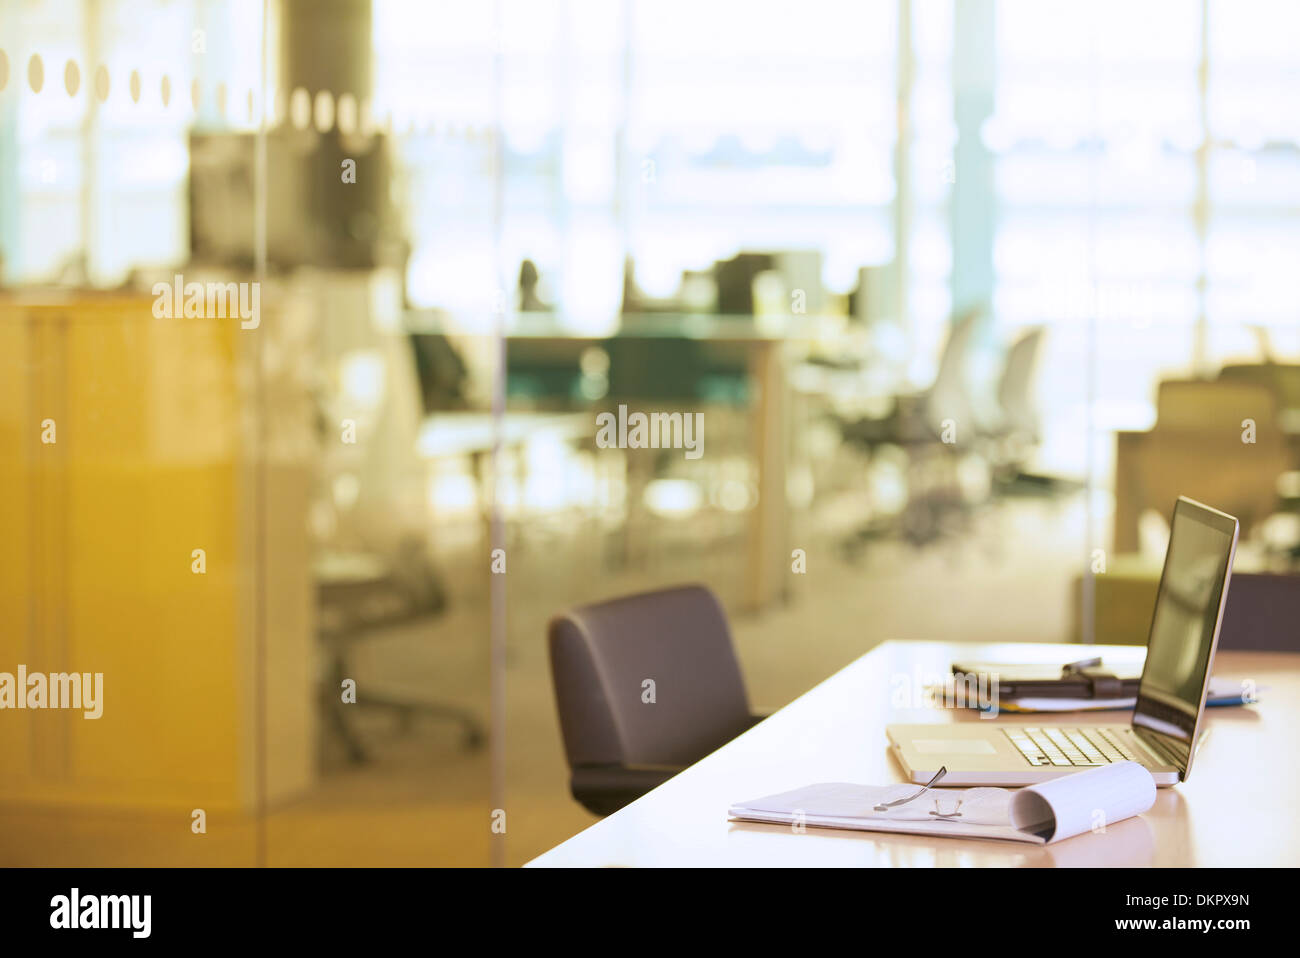 Laptop on desk in office - Stock Image